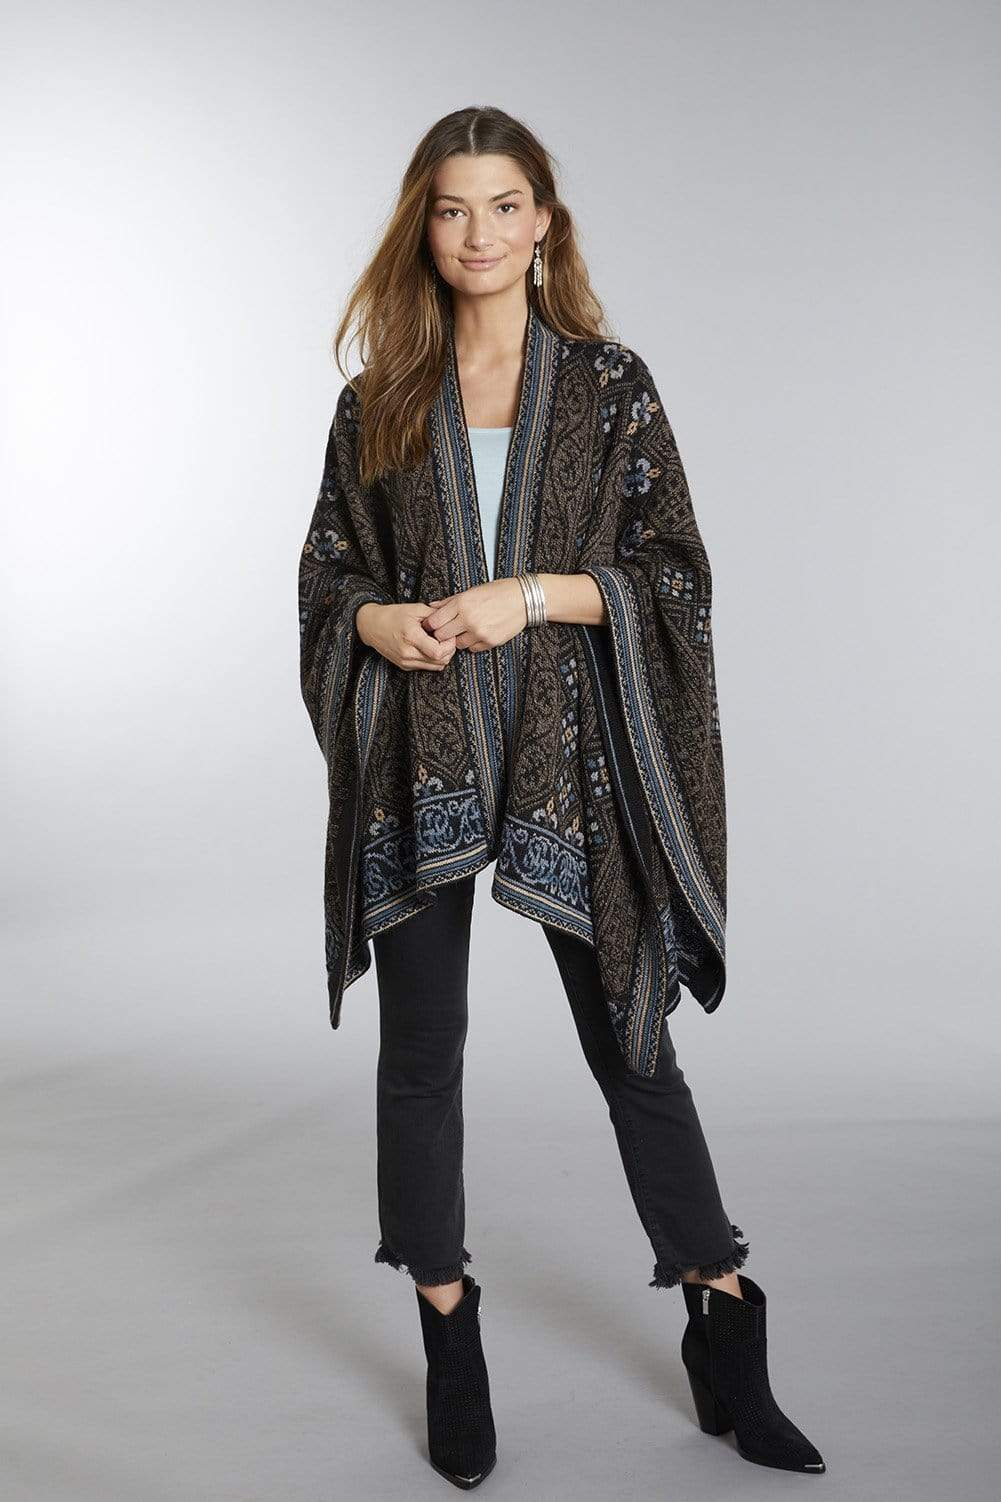 Sarah Embroidered 100% Alpaca Wool Poncho Ruana for Women